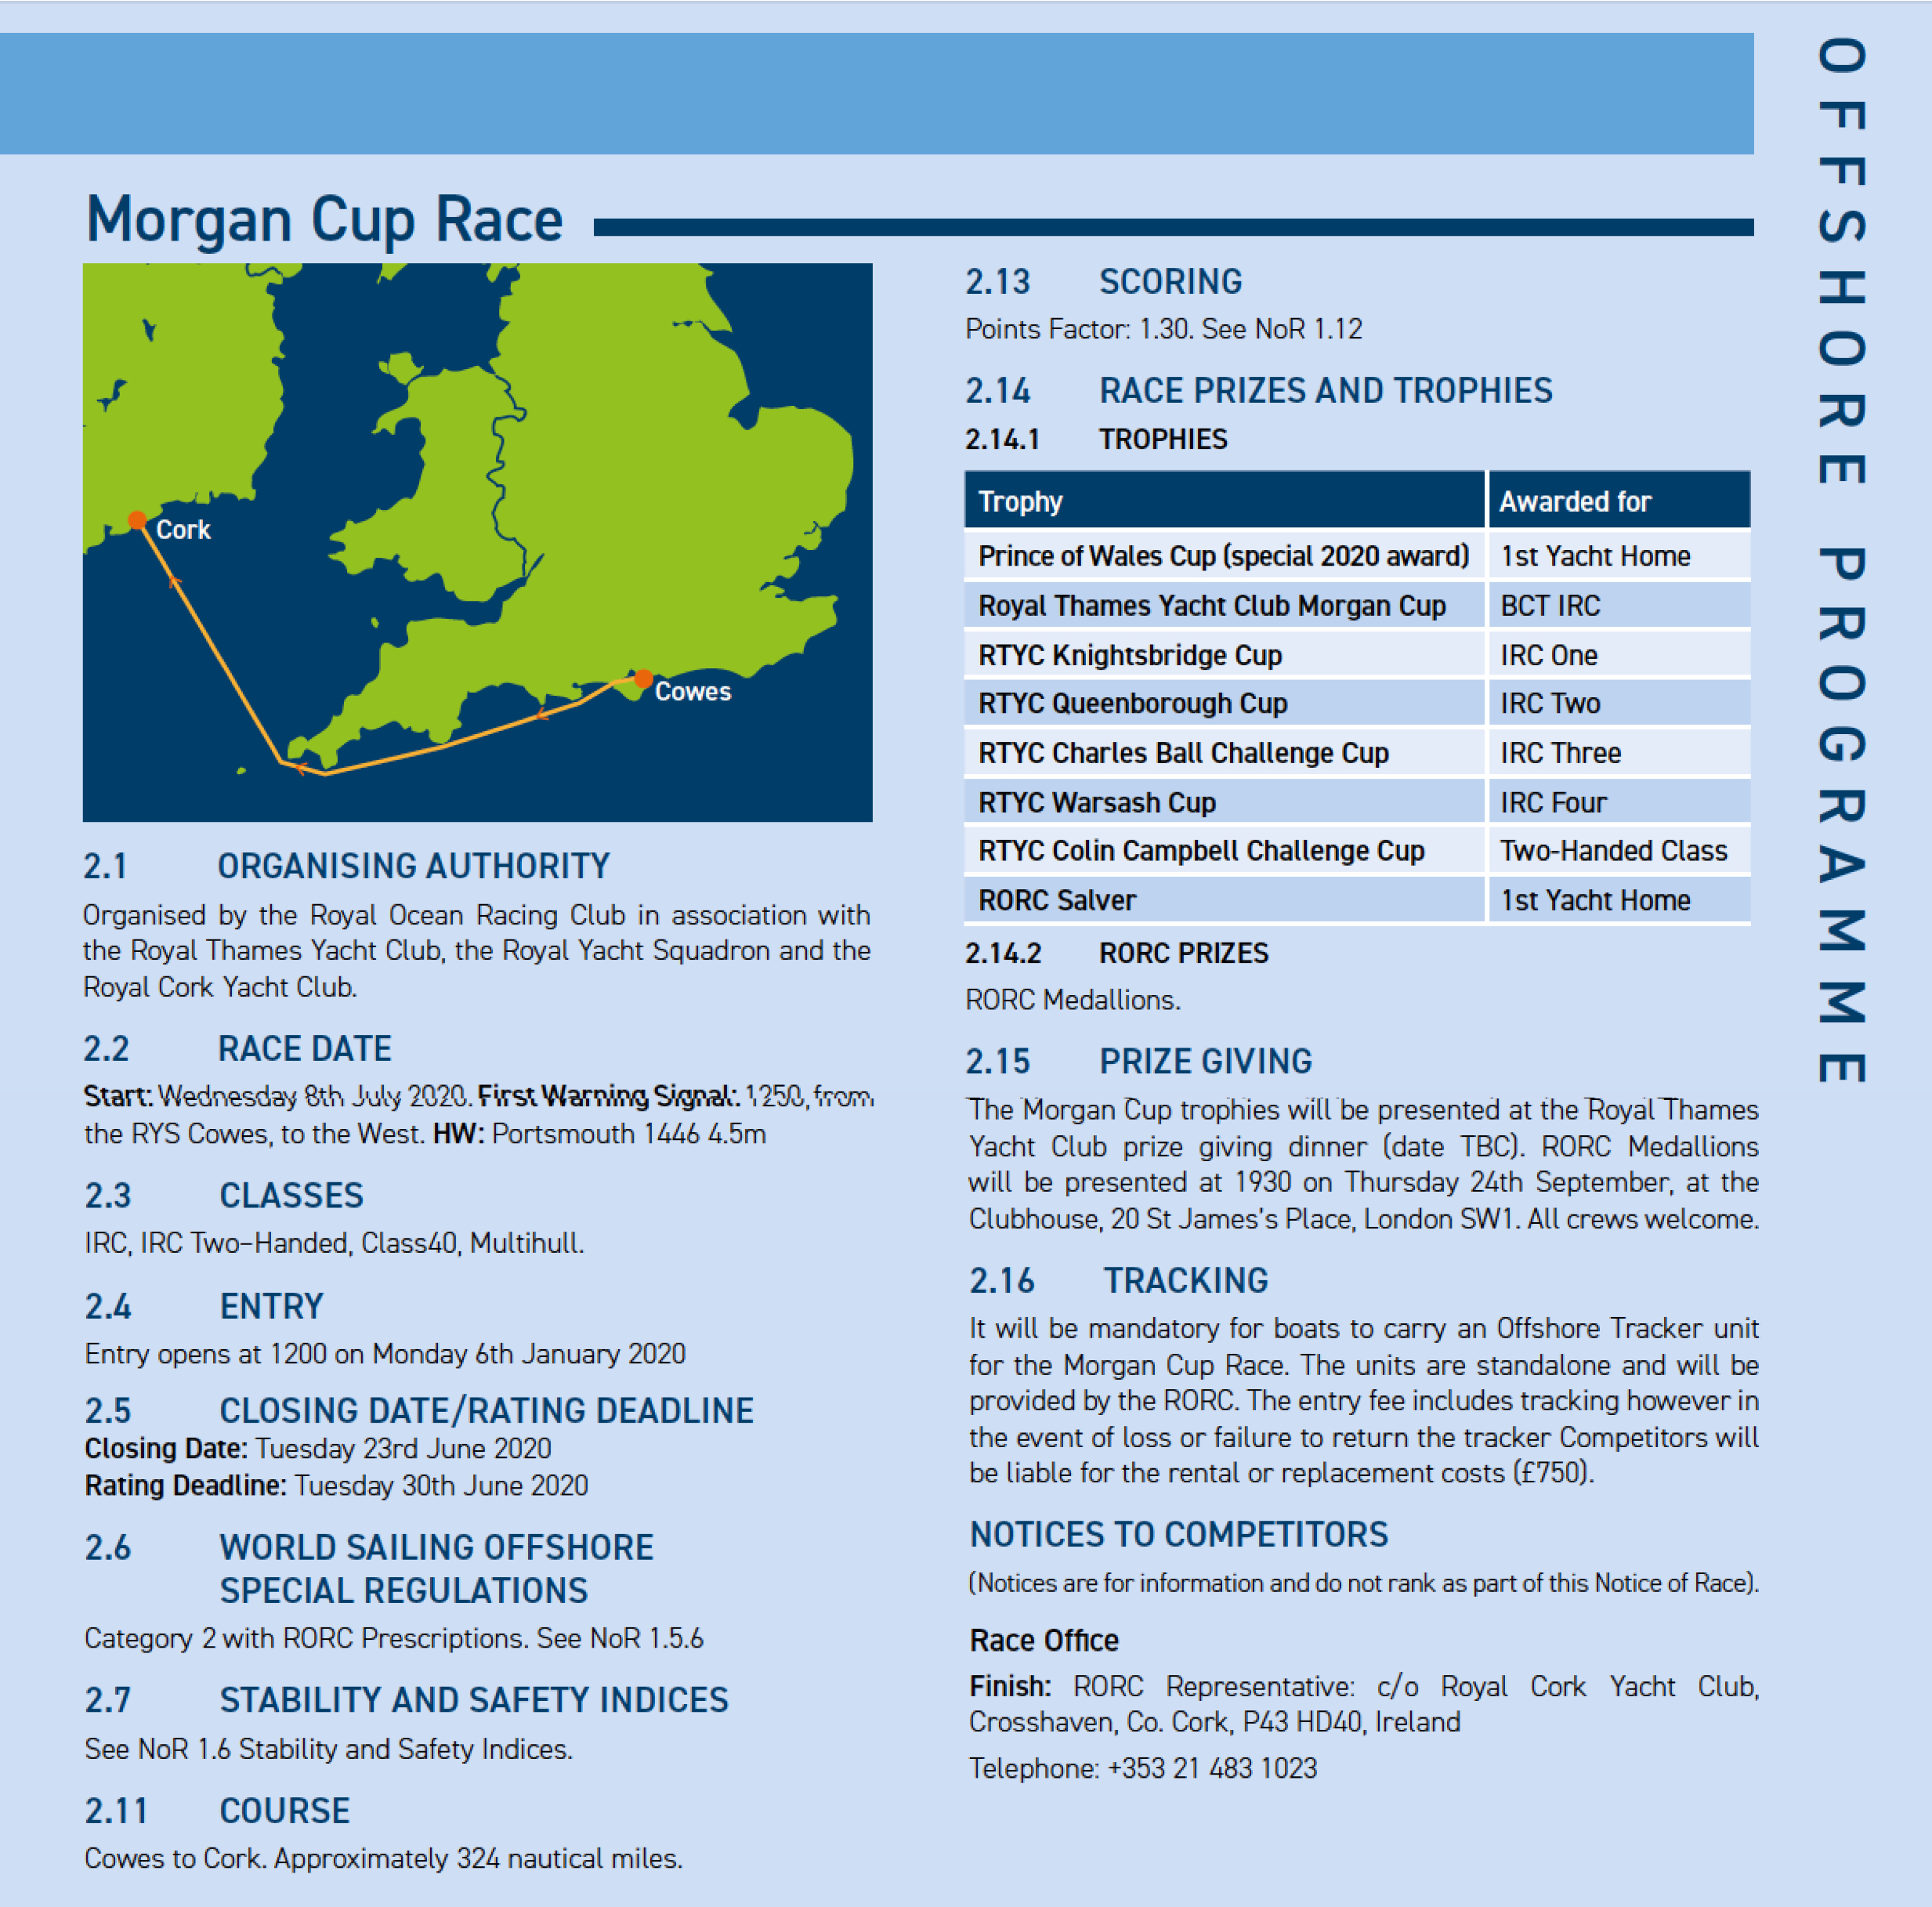 Morgan Cup Race